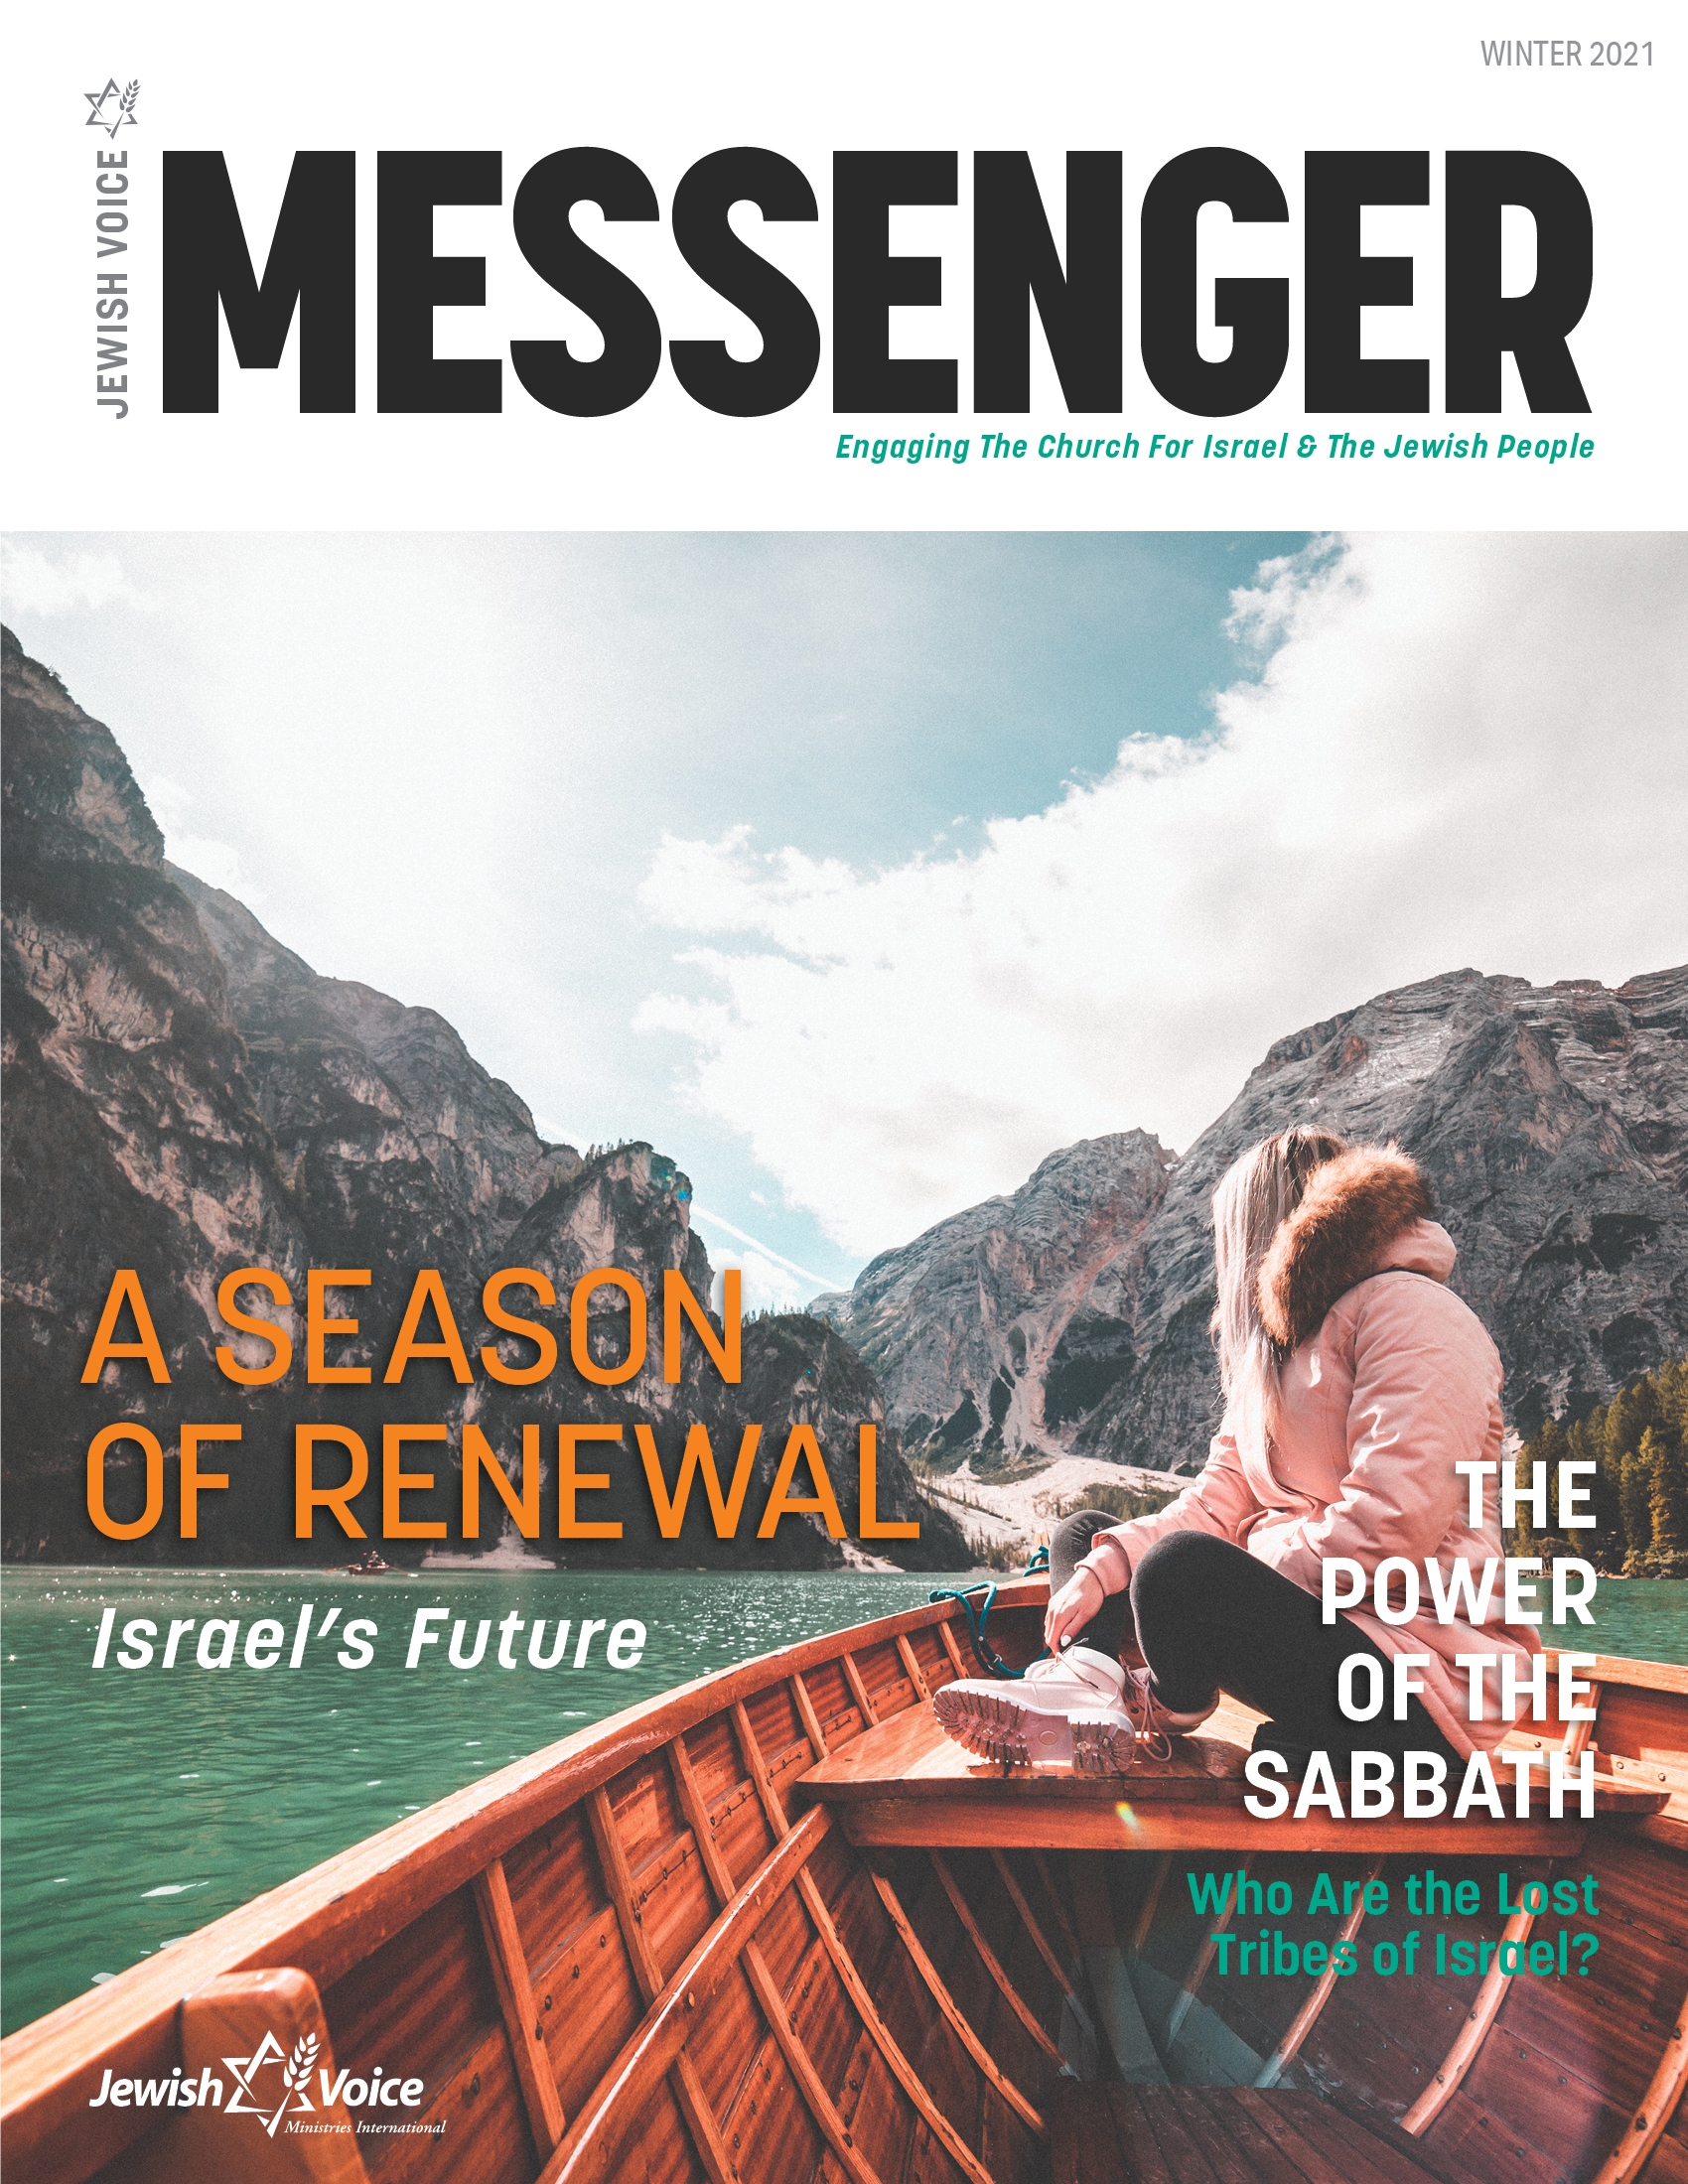 Jewish Voice Messenger - Winter 2021